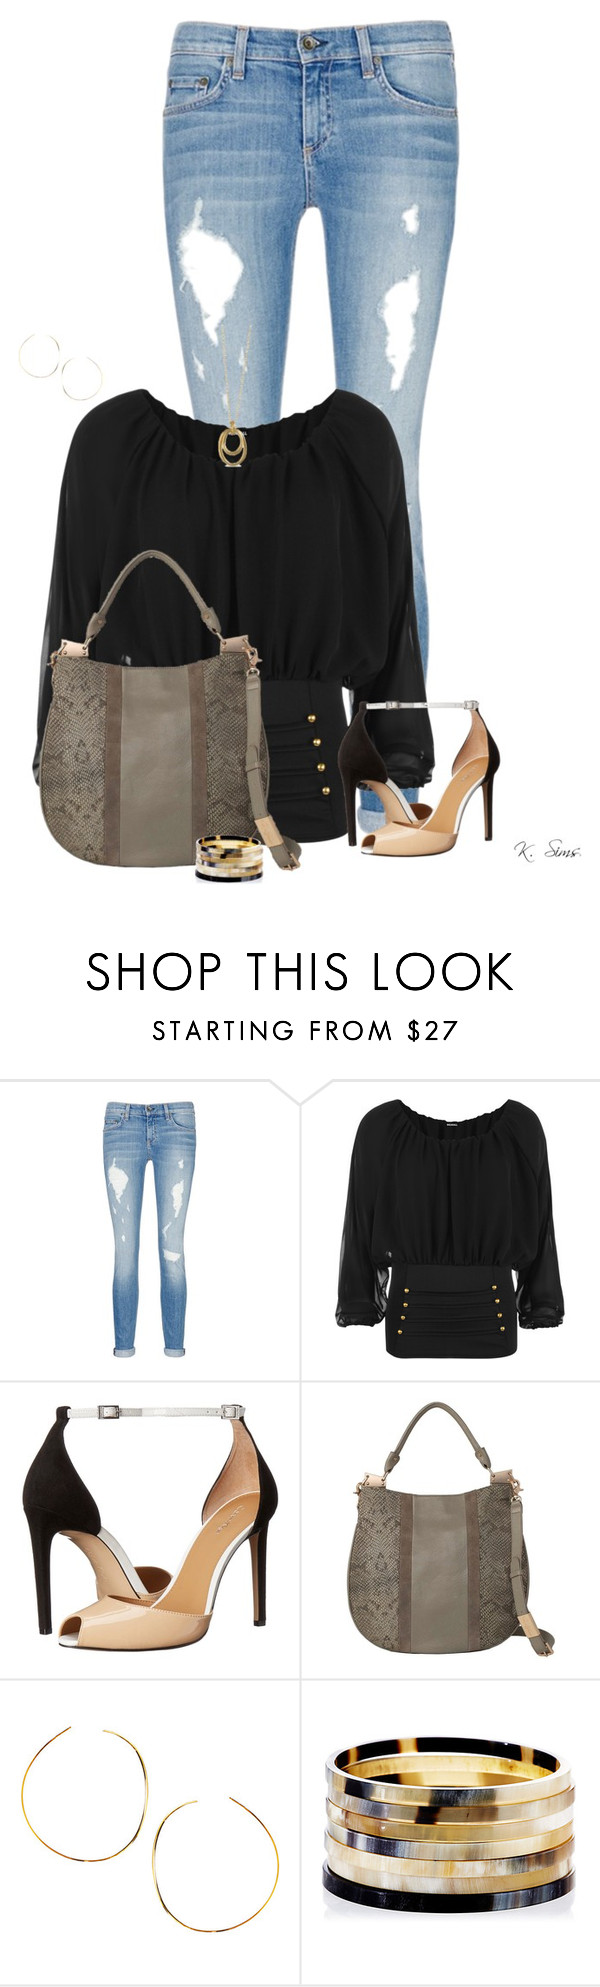 """Boho Top"" by ksims-1 ❤ liked on Polyvore featuring rag & bone/JEAN, WearAll, Calvin Klein, Foley + Corinna, Lana, Nest and Karen Kane"